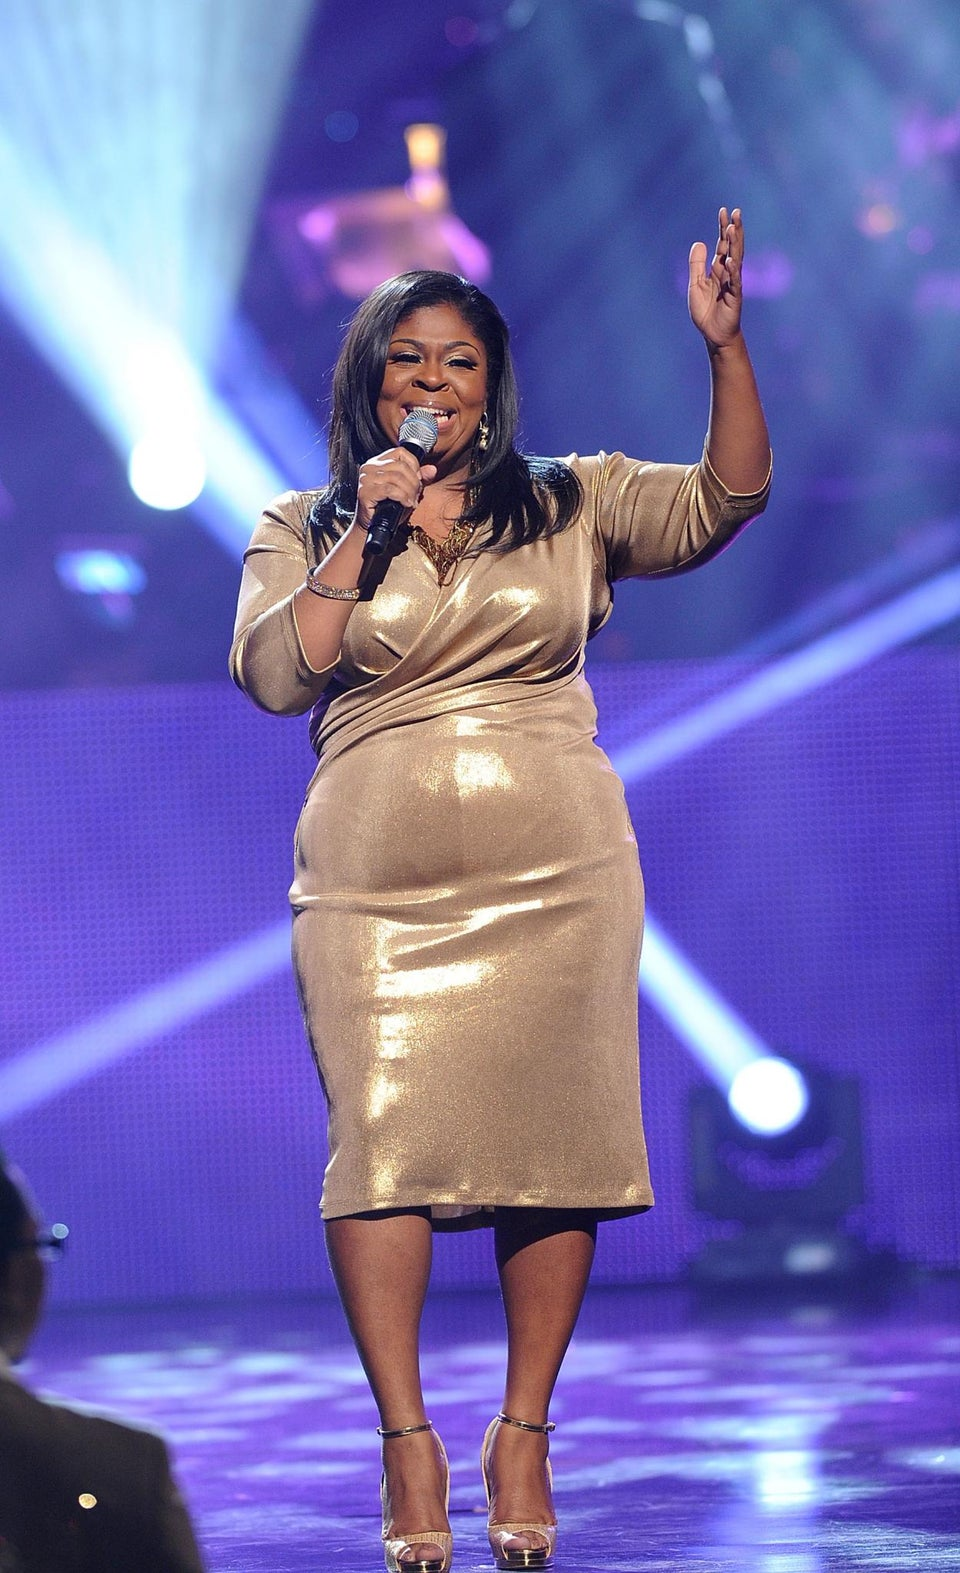 TheFaux-Sanctity Of Kim Burrell: If You Don't Accept Us, Don't Ask For Our Support